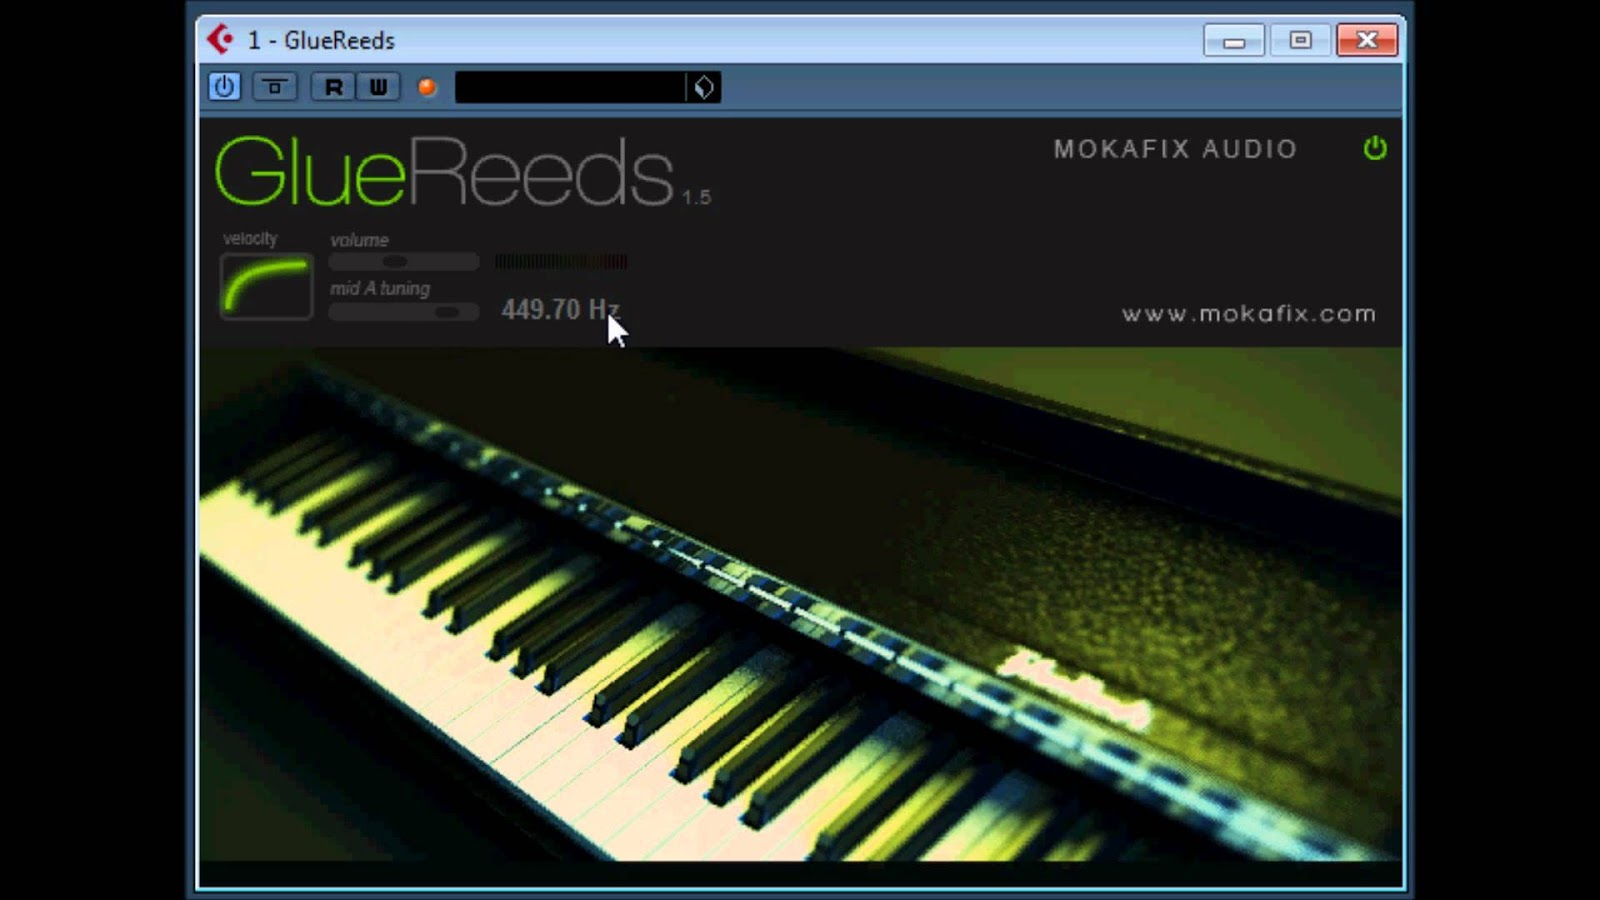 Download] GlueReeds - Free Electric Piano VST Plugins - Producer